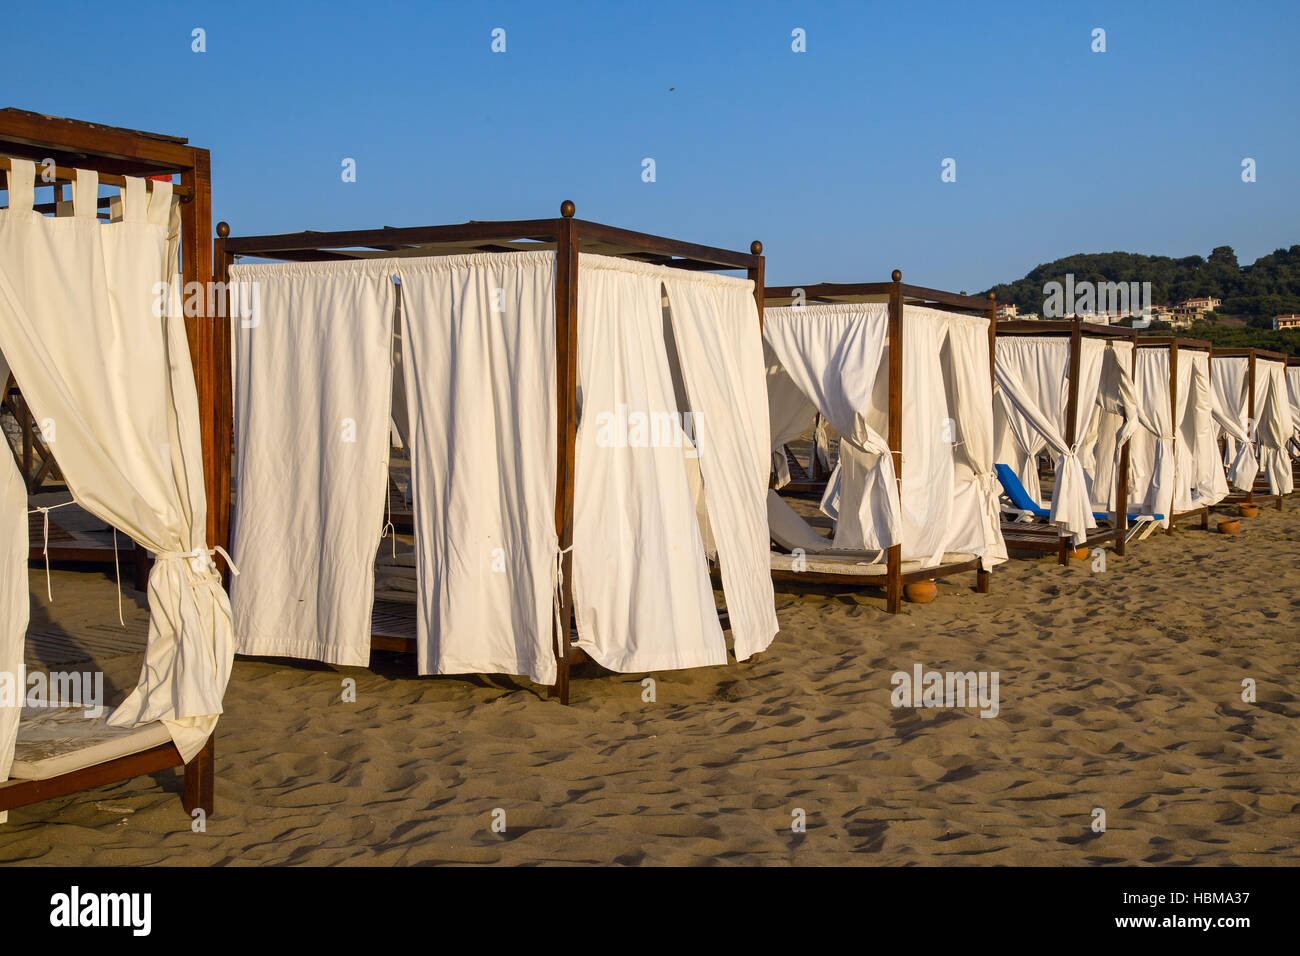 Beach canopies at a luxury resort & Beach canopies at a luxury resort Stock Photo: 127680763 - Alamy